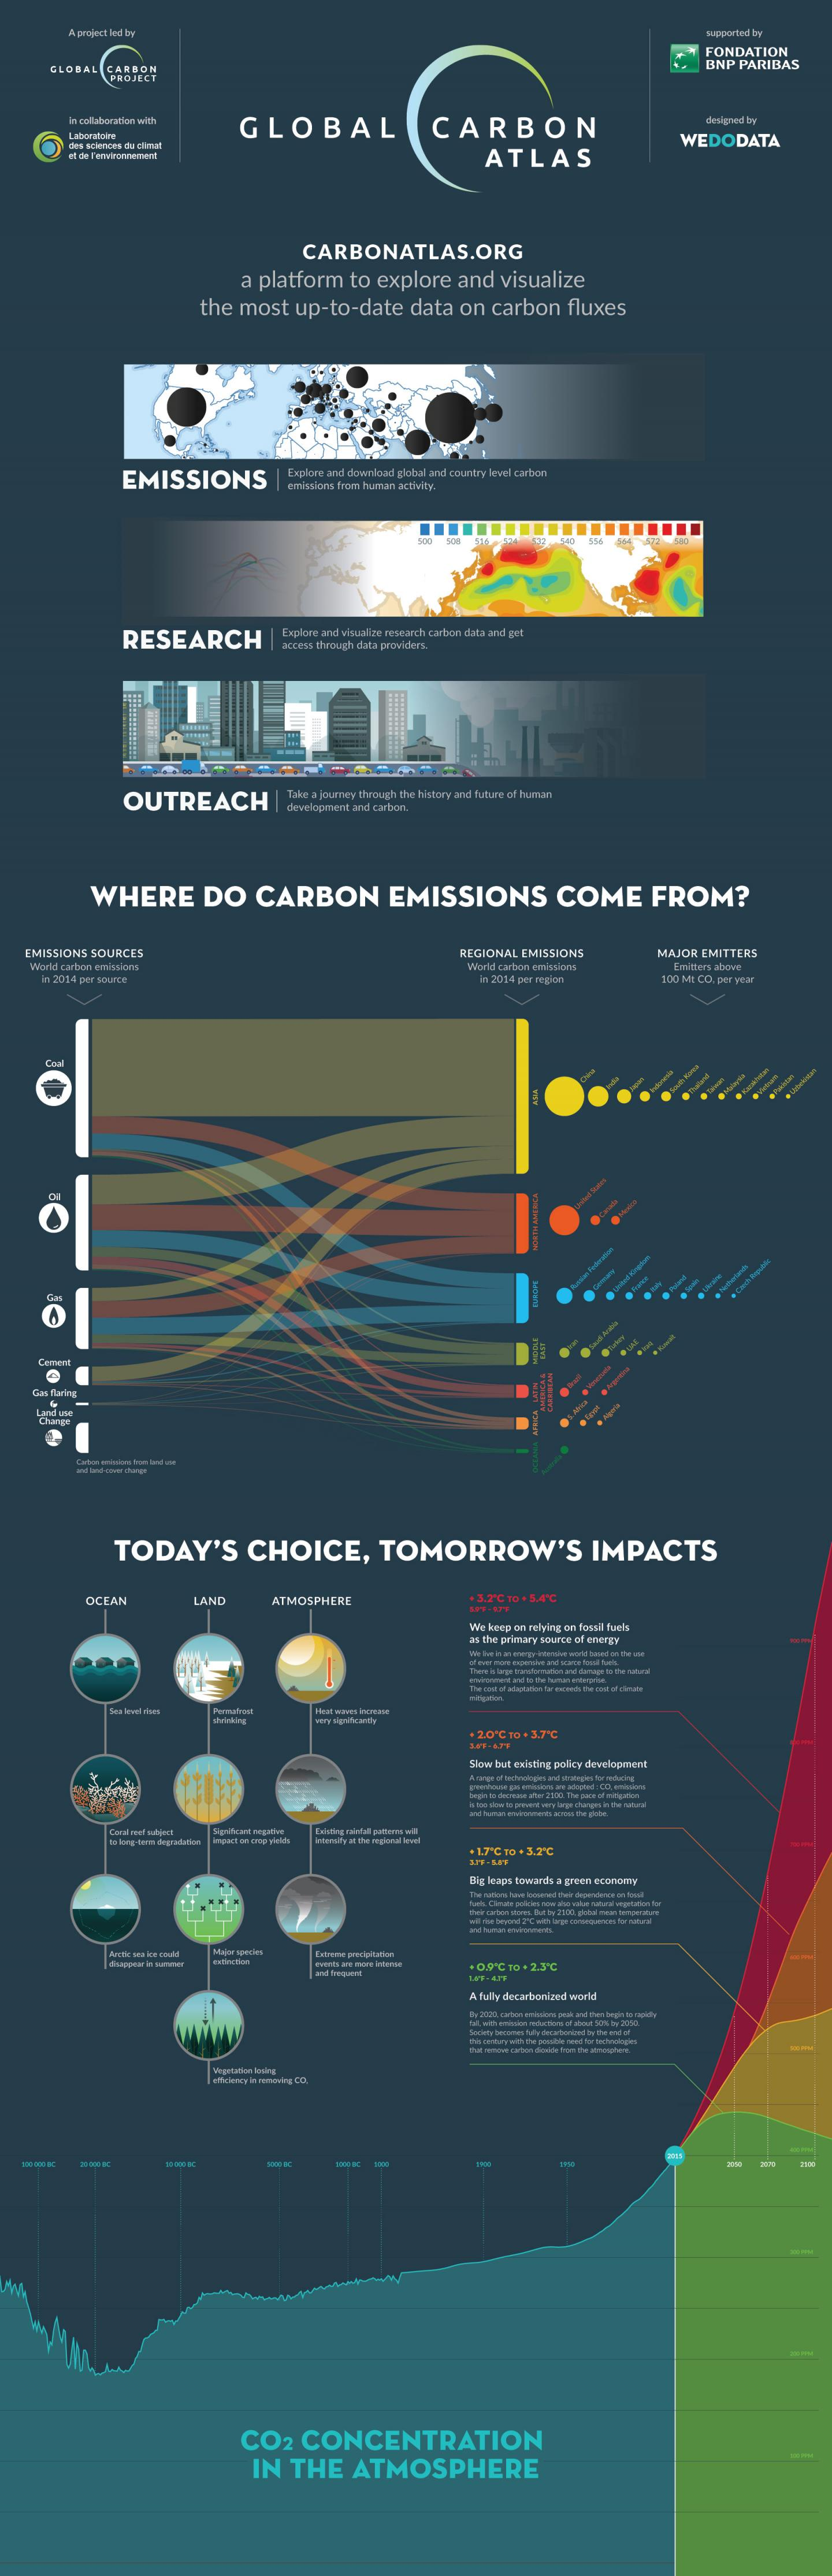 Global Carbon Atlas Infographic